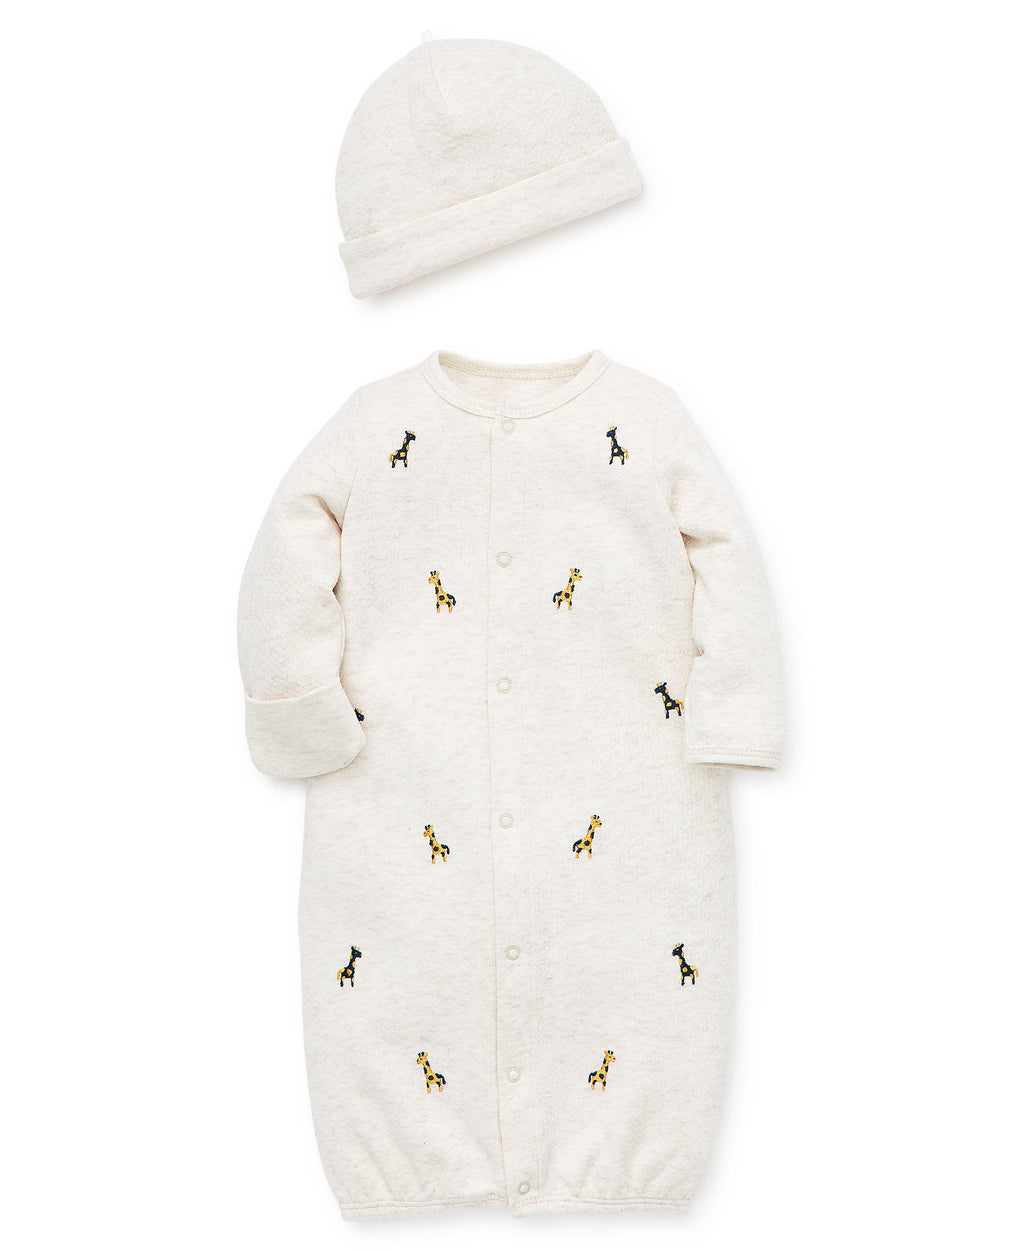 Wild Safari Sleeper Gown And Hat